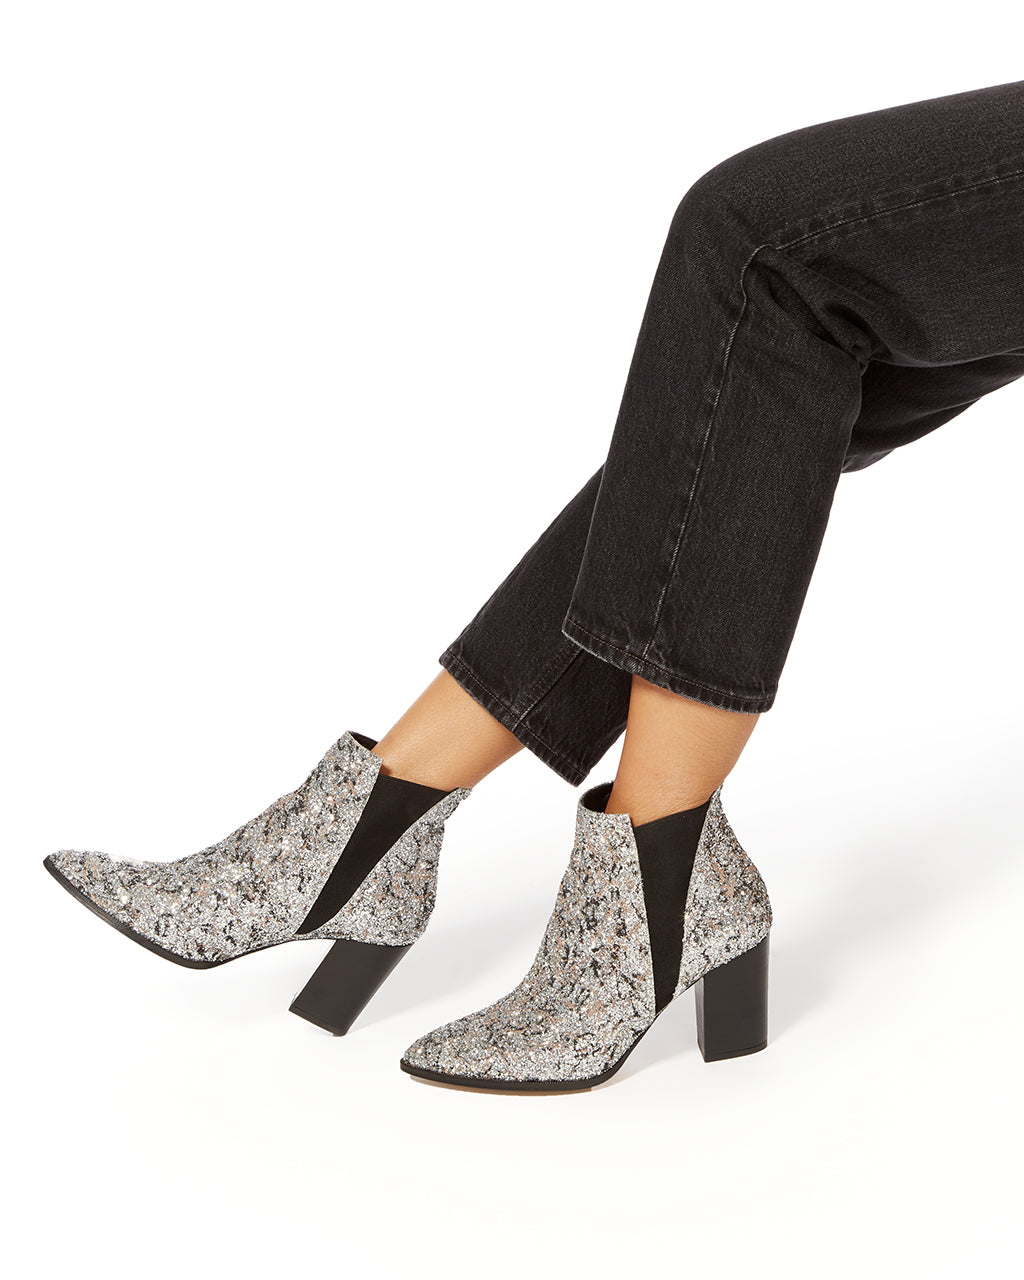 Tempo Multi-Glitter Boot by intentionally blank - shoes - ban.do 6985c5351